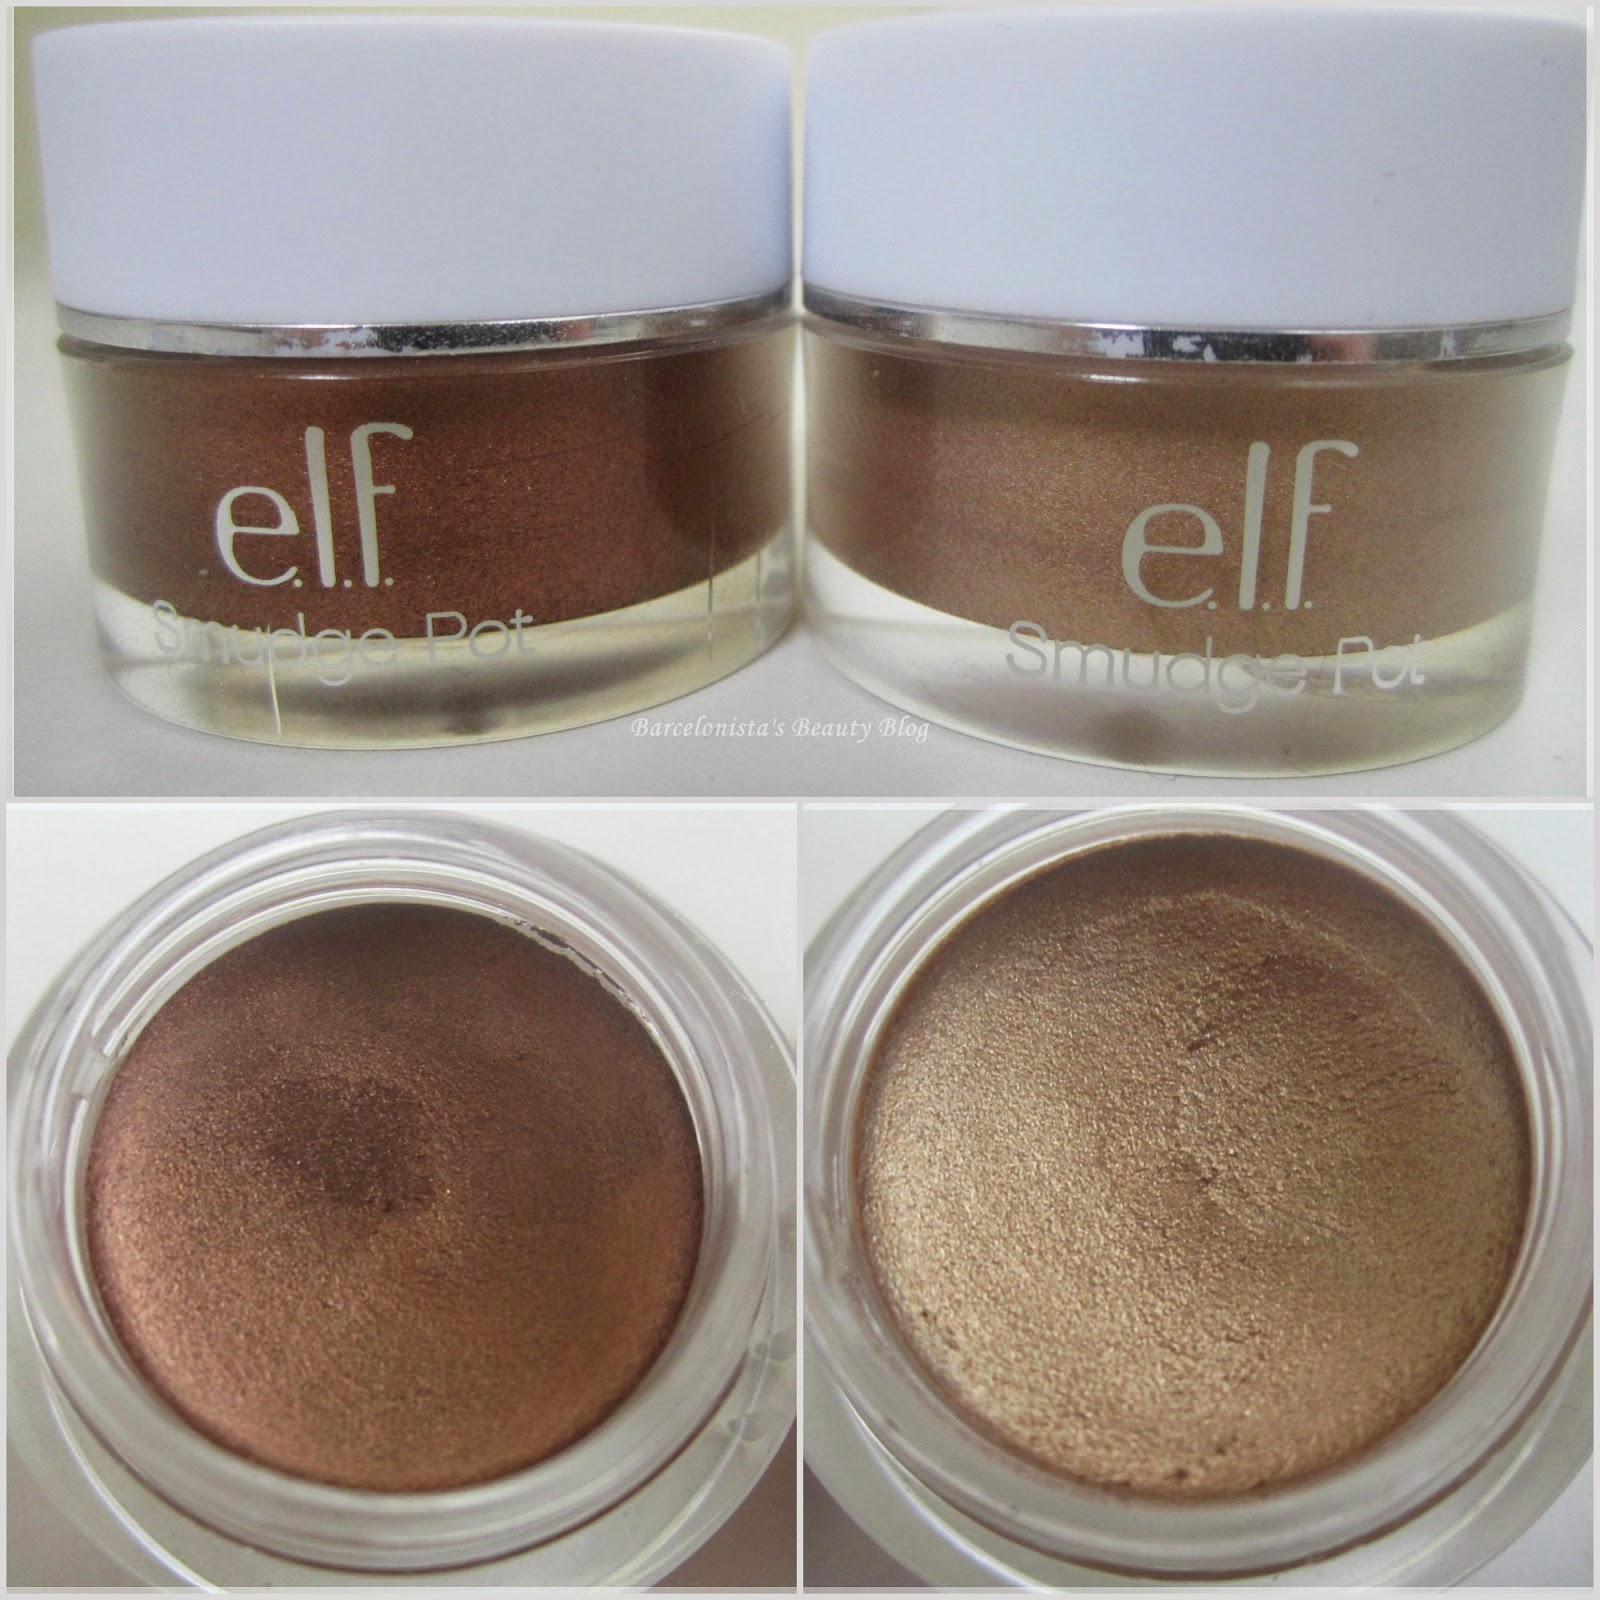 e.l.f. Smudge Pots: A Review ('Brownie Points' & 'Back To Basics')